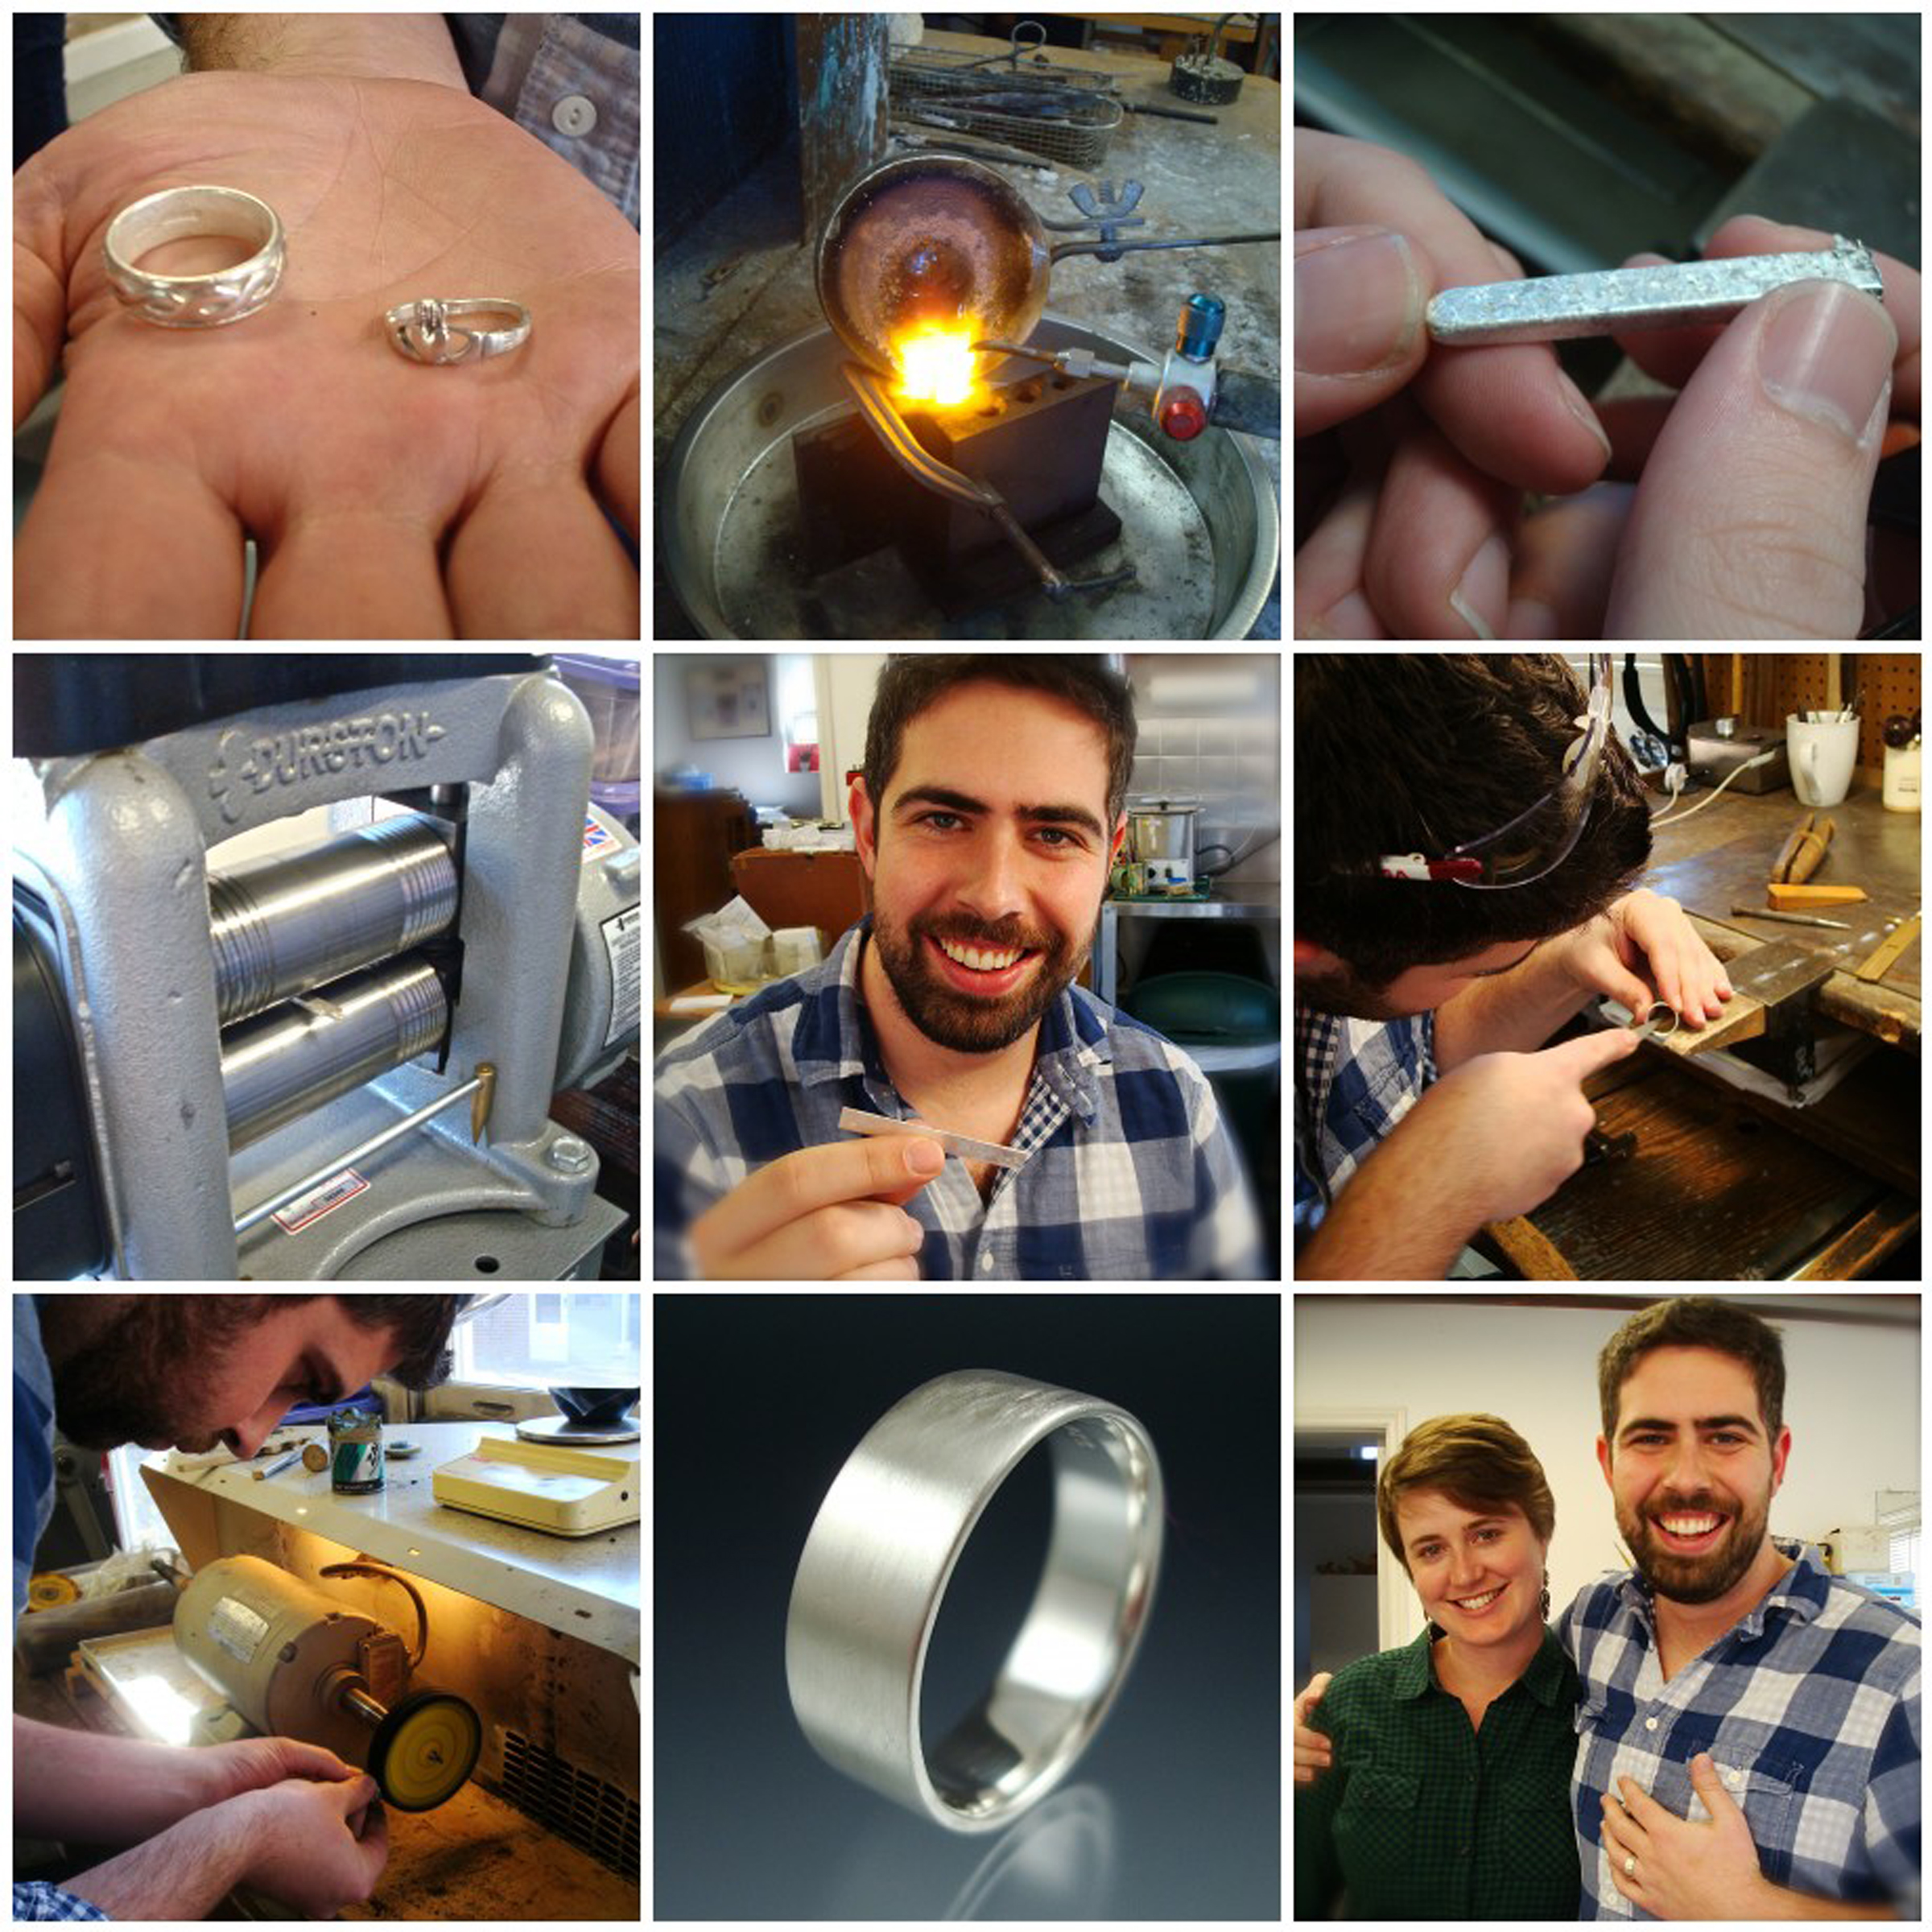 Ben and Erin traveled approximately 500 miles so they could melt down the rings they gave each other years ago into a new wedding ring for Ben!